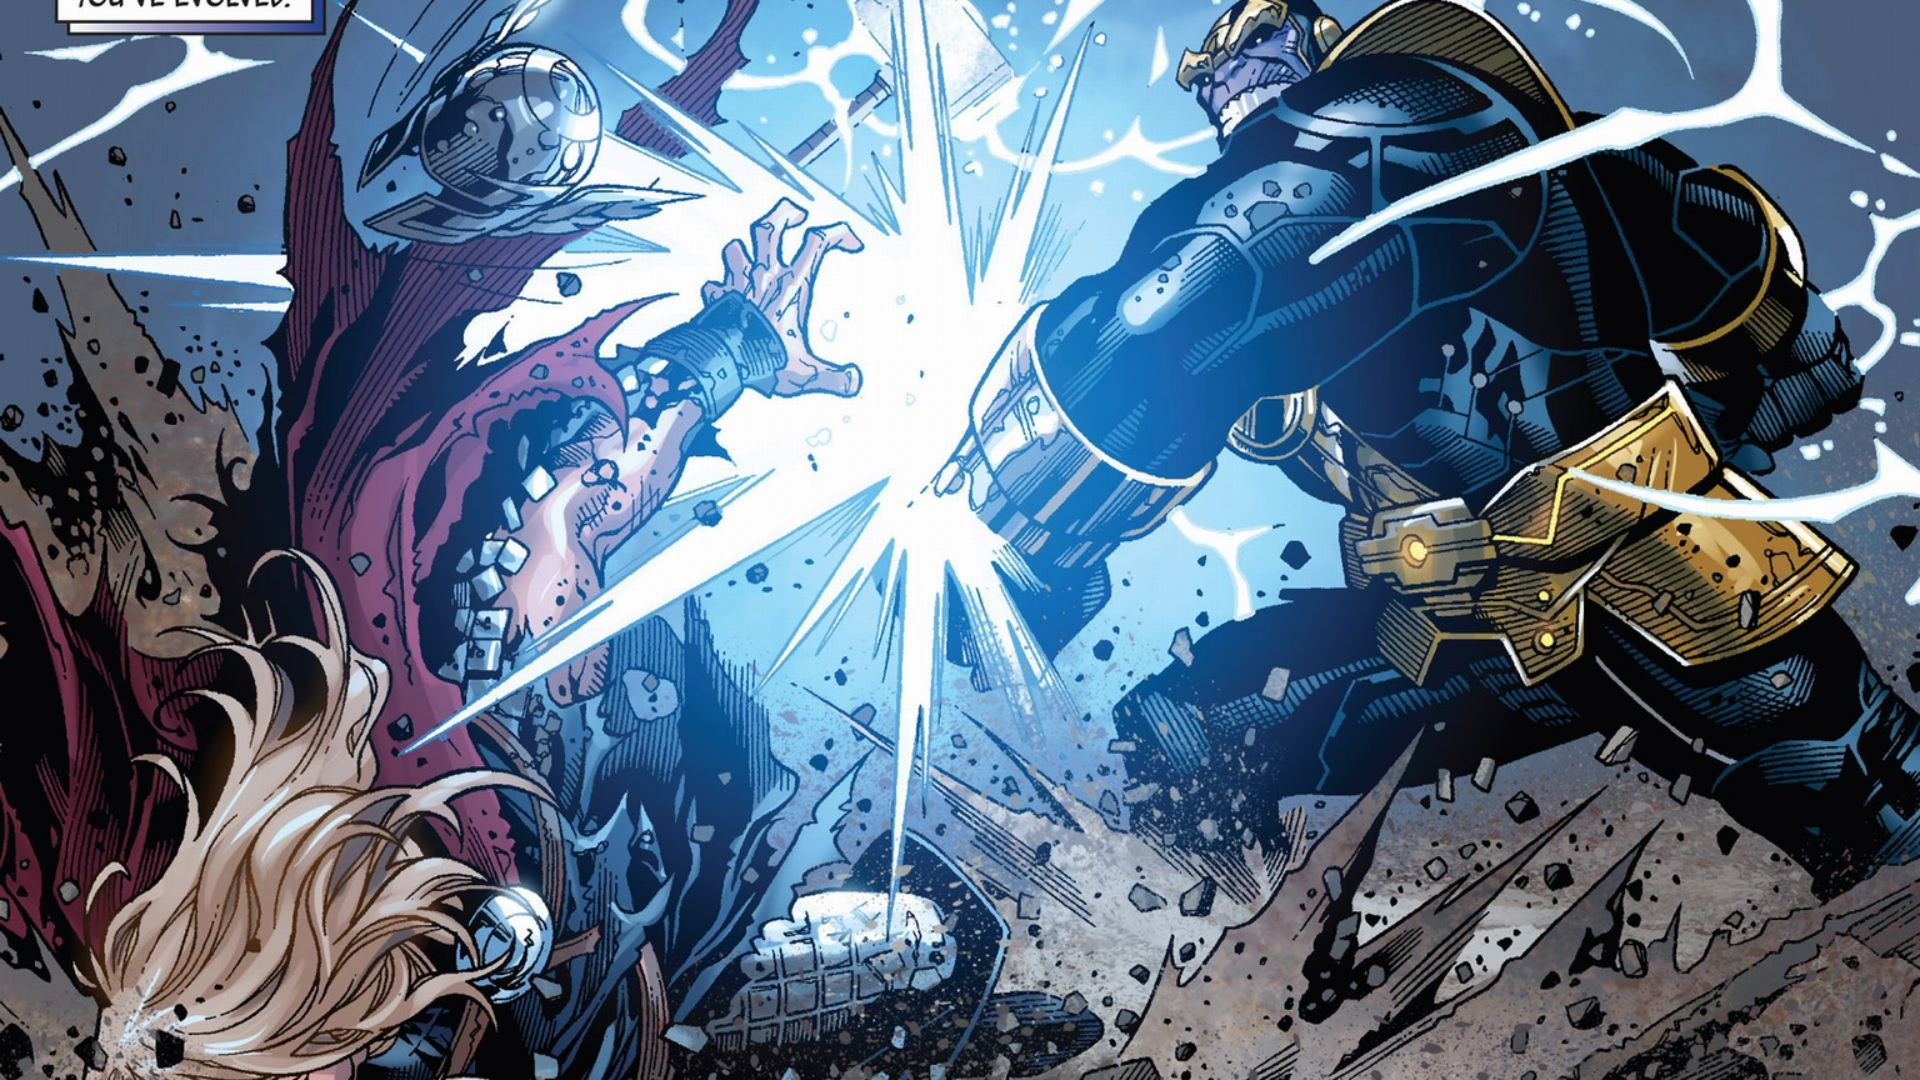 Thanos vs Marvel Wallpapers   Top Thanos vs Marvel 1920x1080